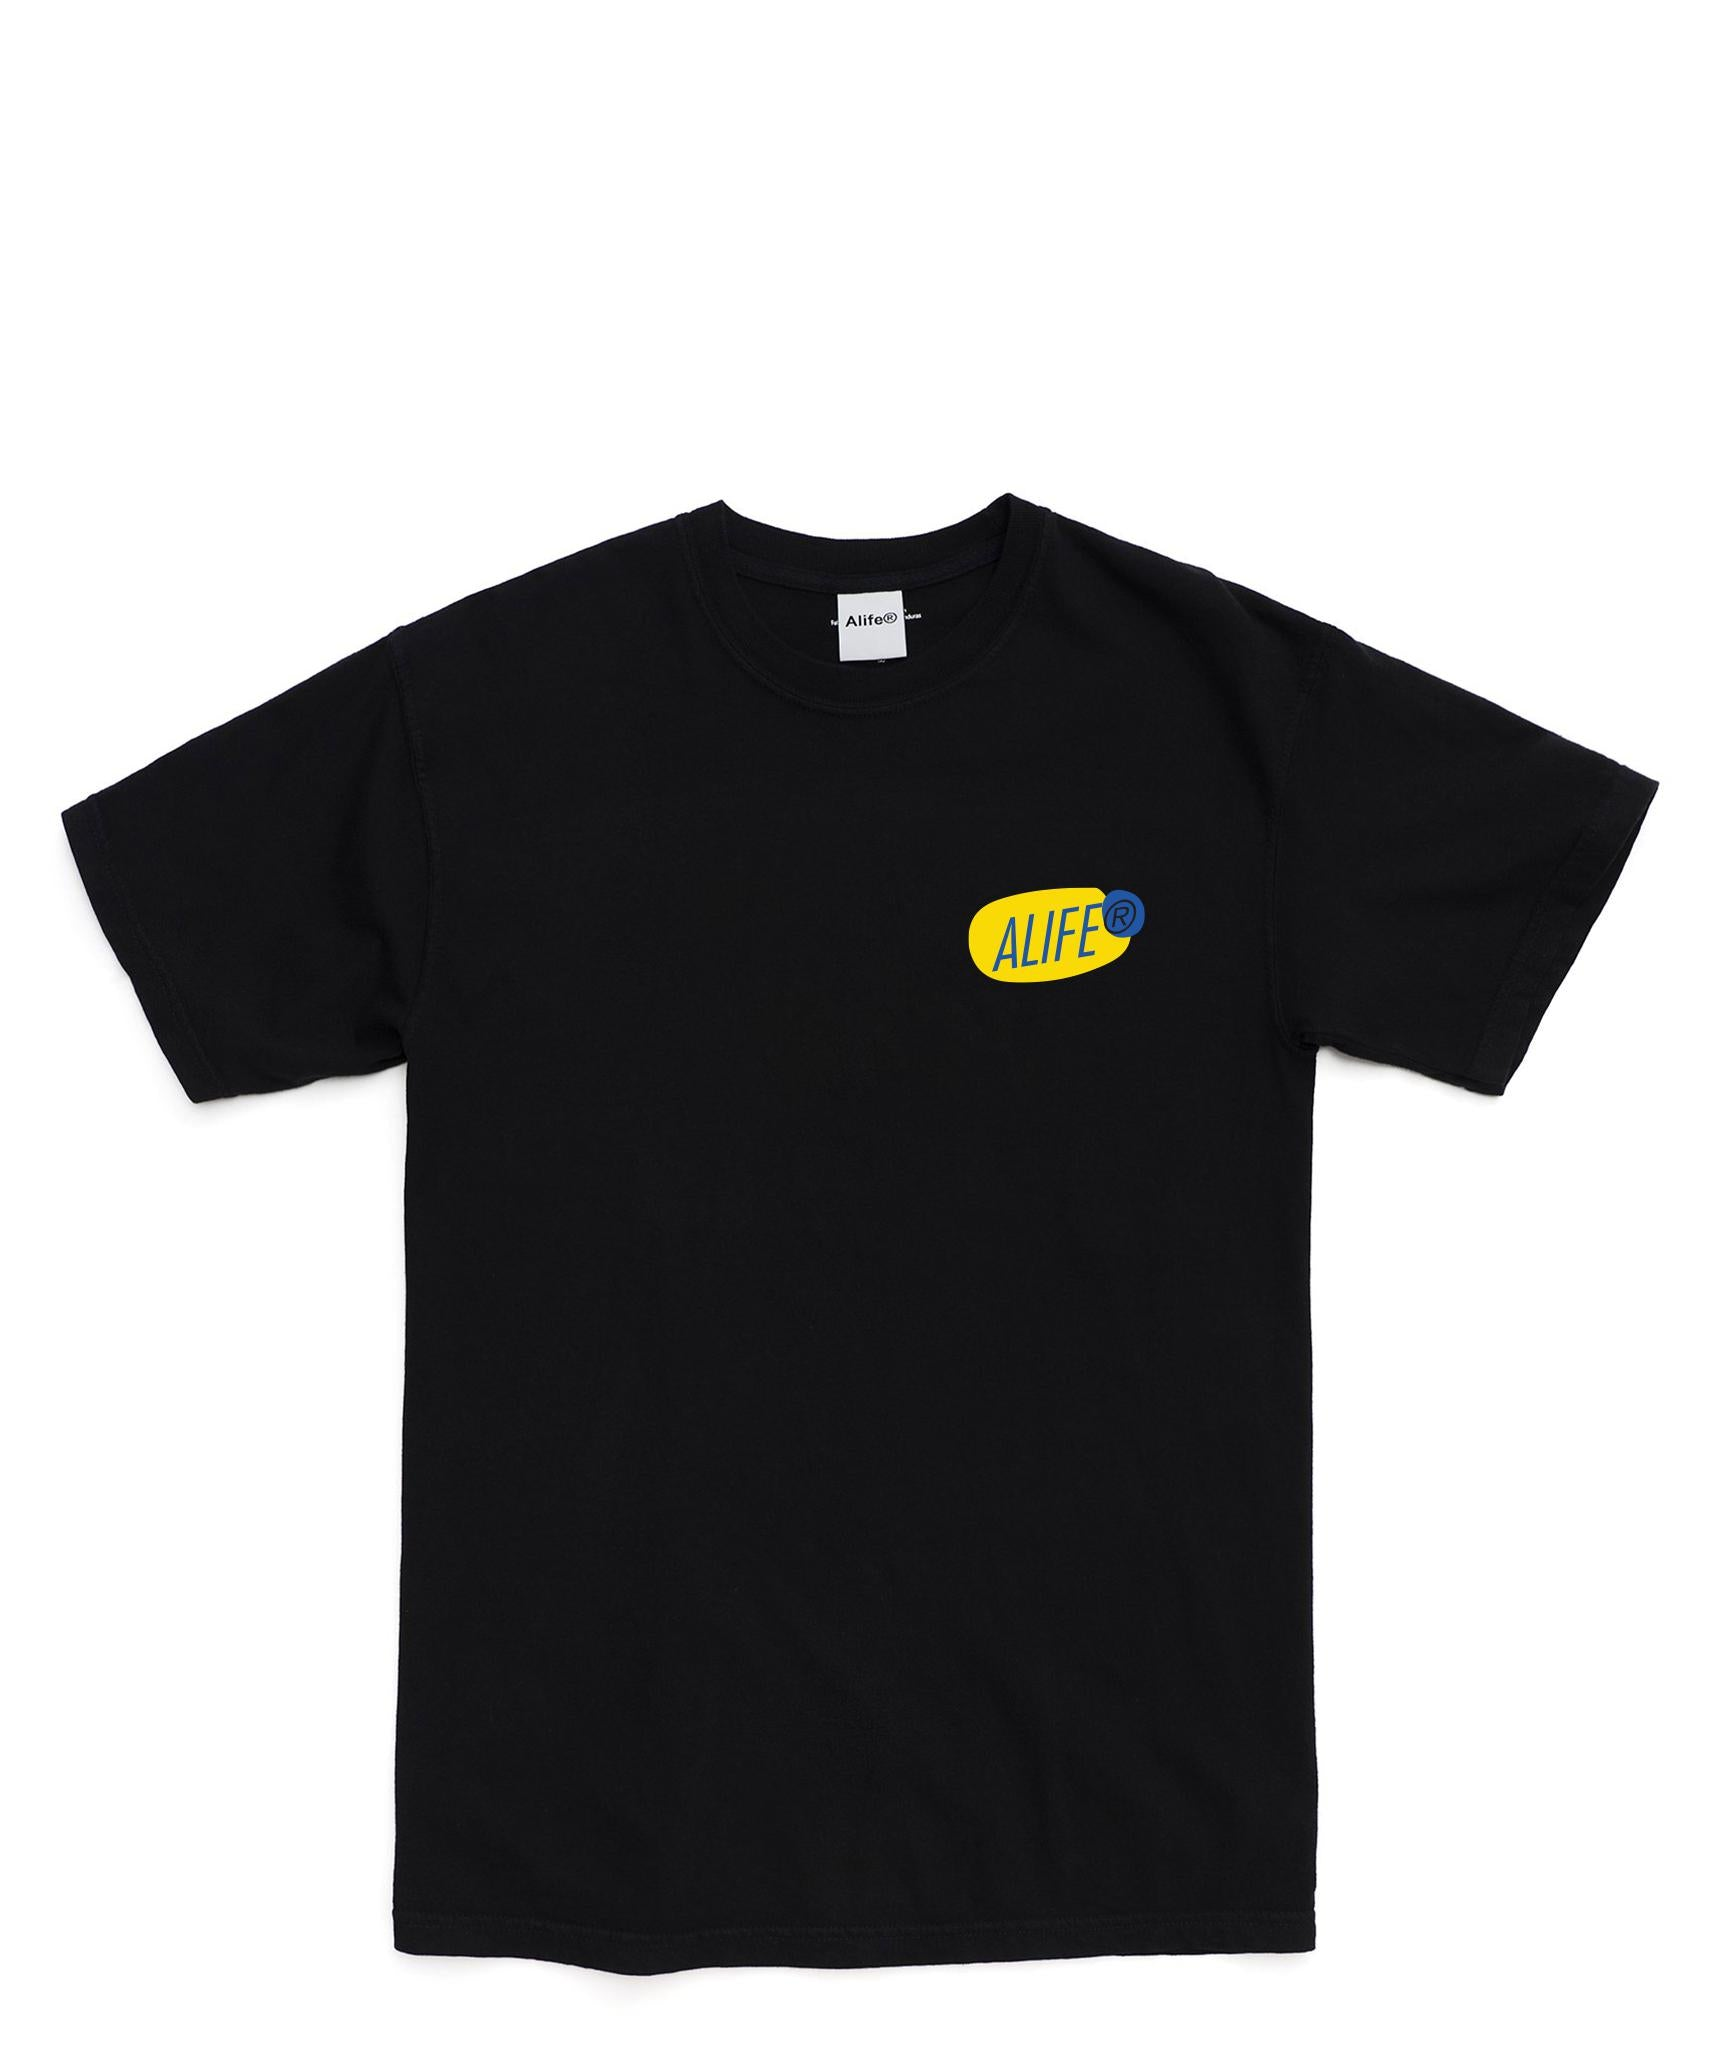 Alife New York City Tee - Black